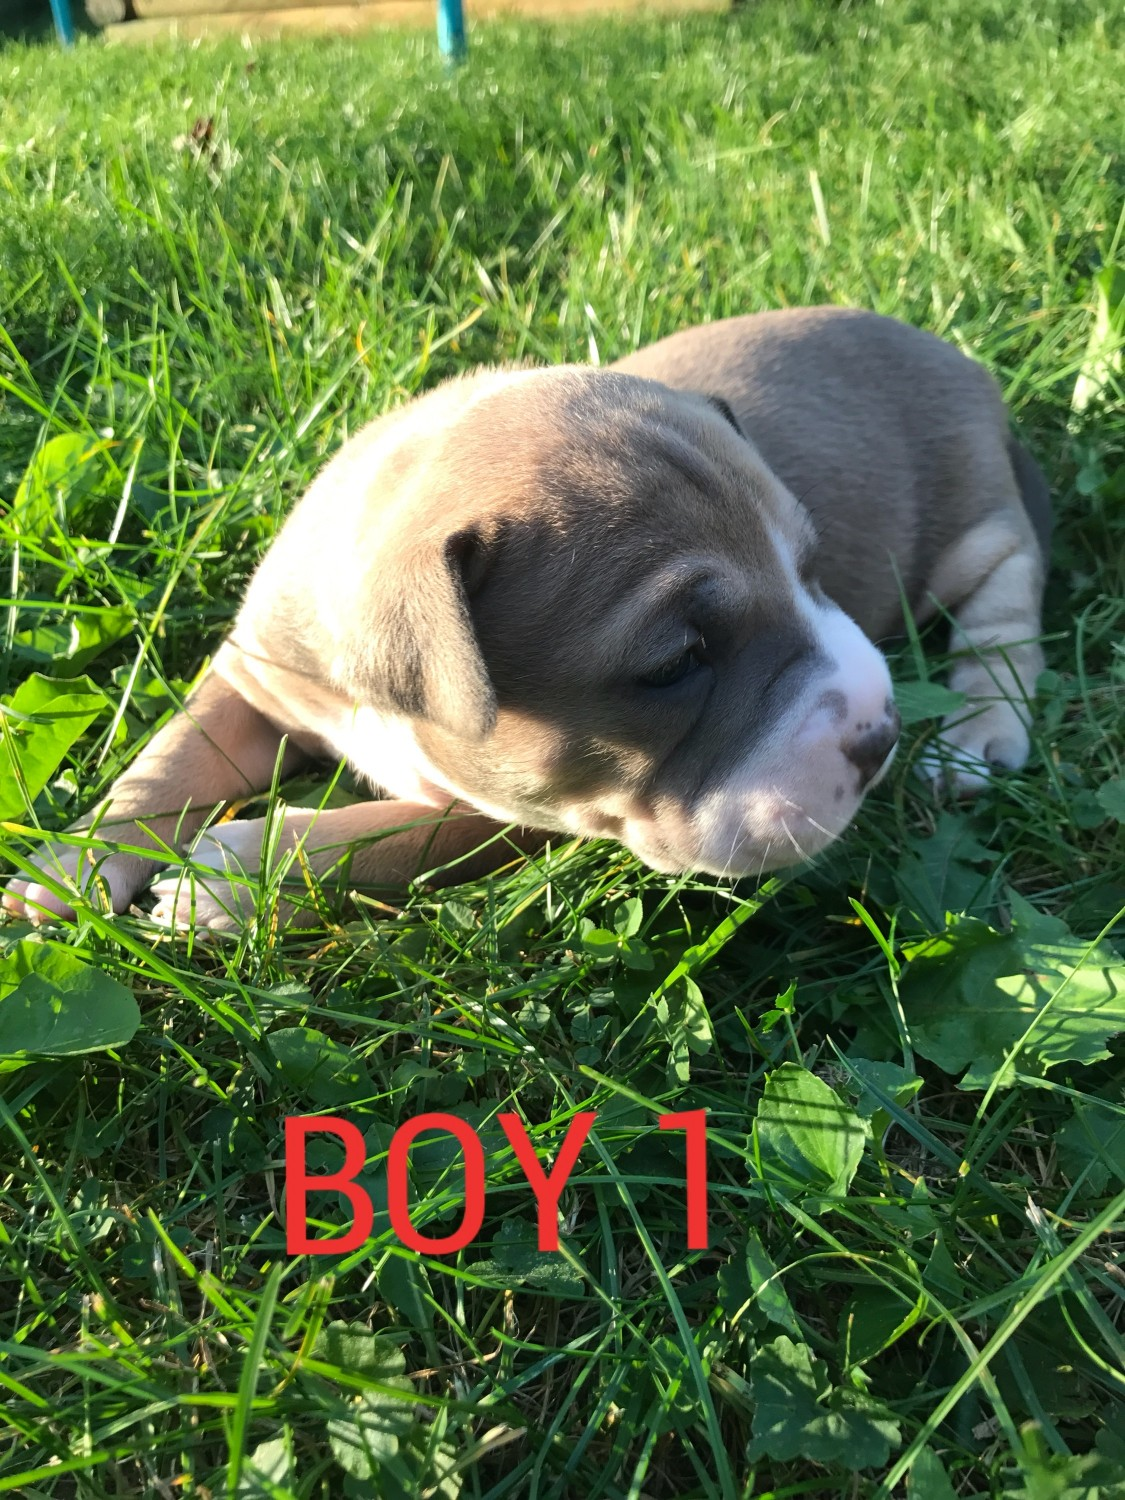 pittbul Puppies For Sale In Lagos - Pets - Nigeria